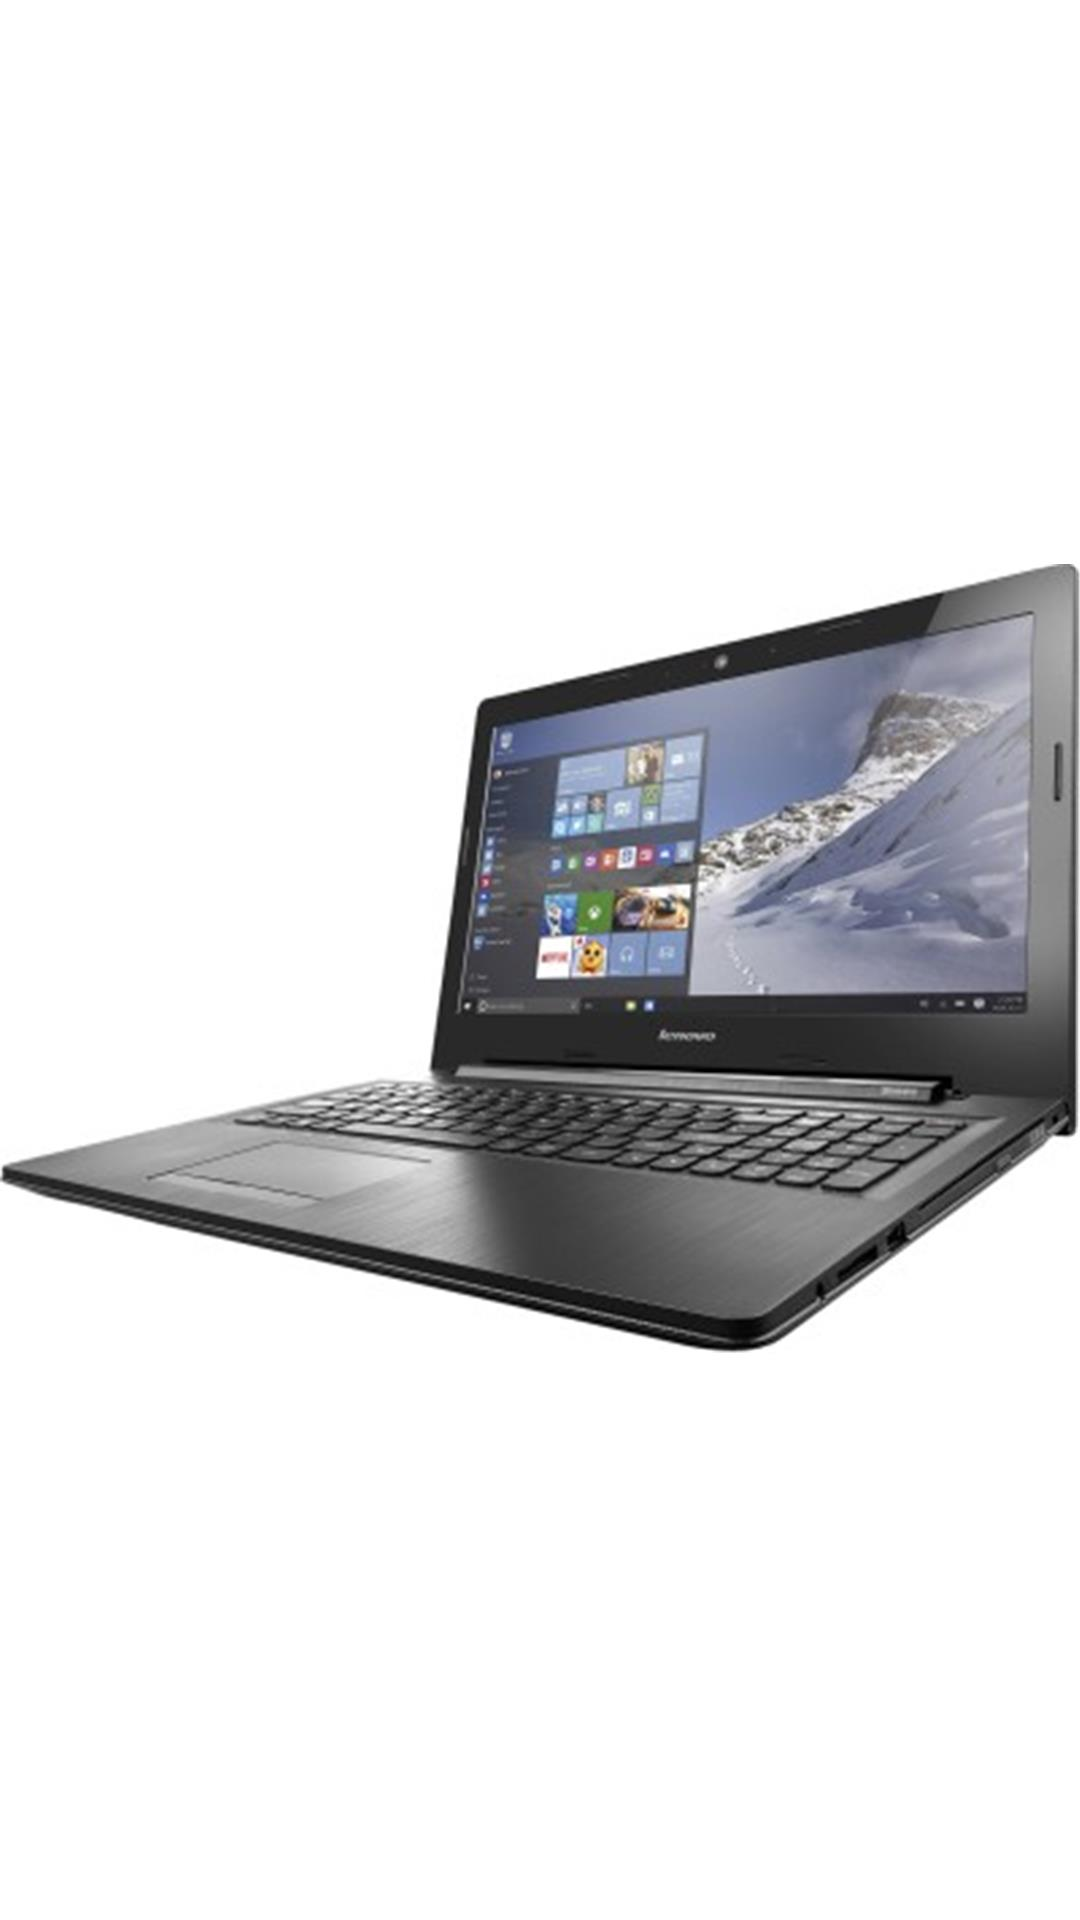 Lenovo G50-80 (80E502ULIN) (Core i3 (5th Gen)/4 GB/1TB/39.62 cm (15.6)/Windows 10/2 GB Graphics)  Laptop (Black)